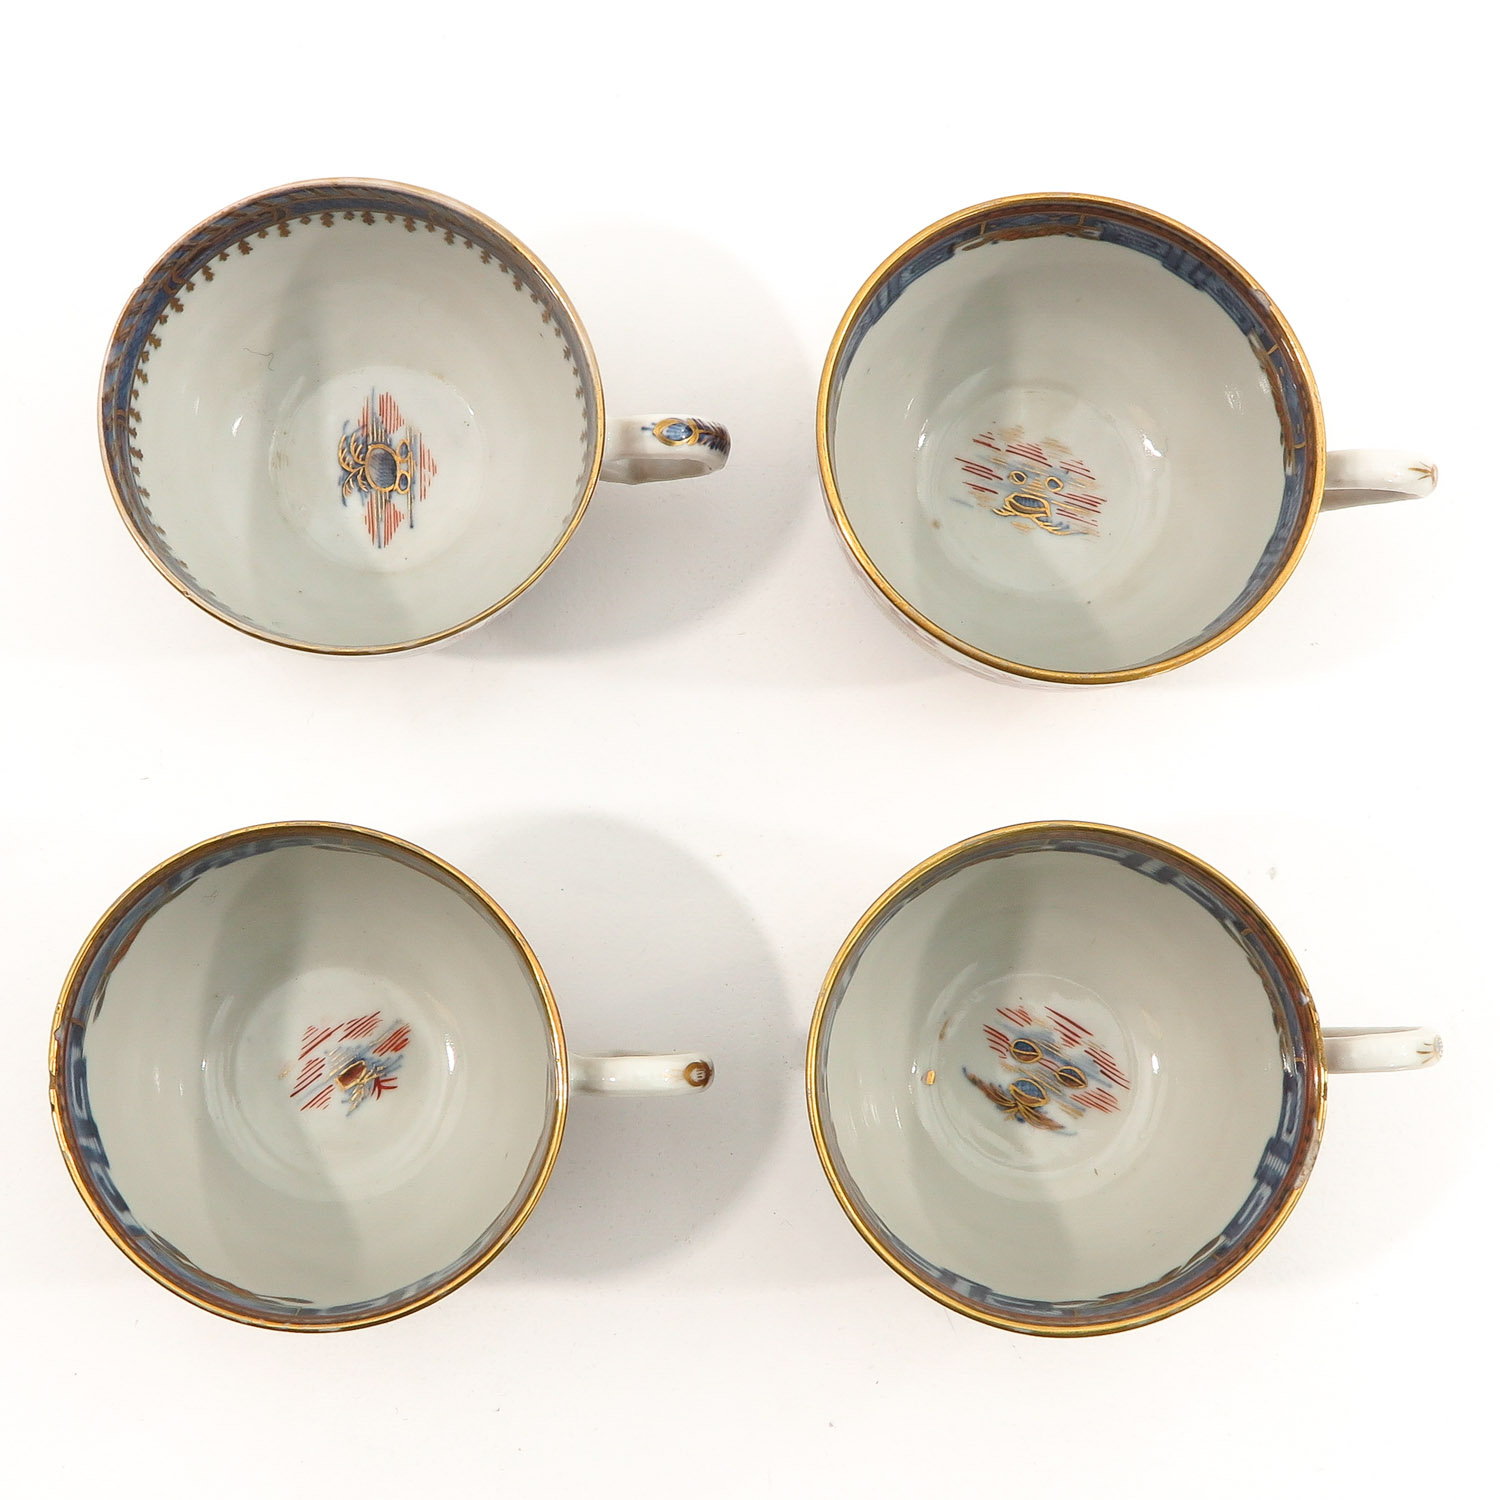 4 Imari Cups and Saucers - Image 5 of 10